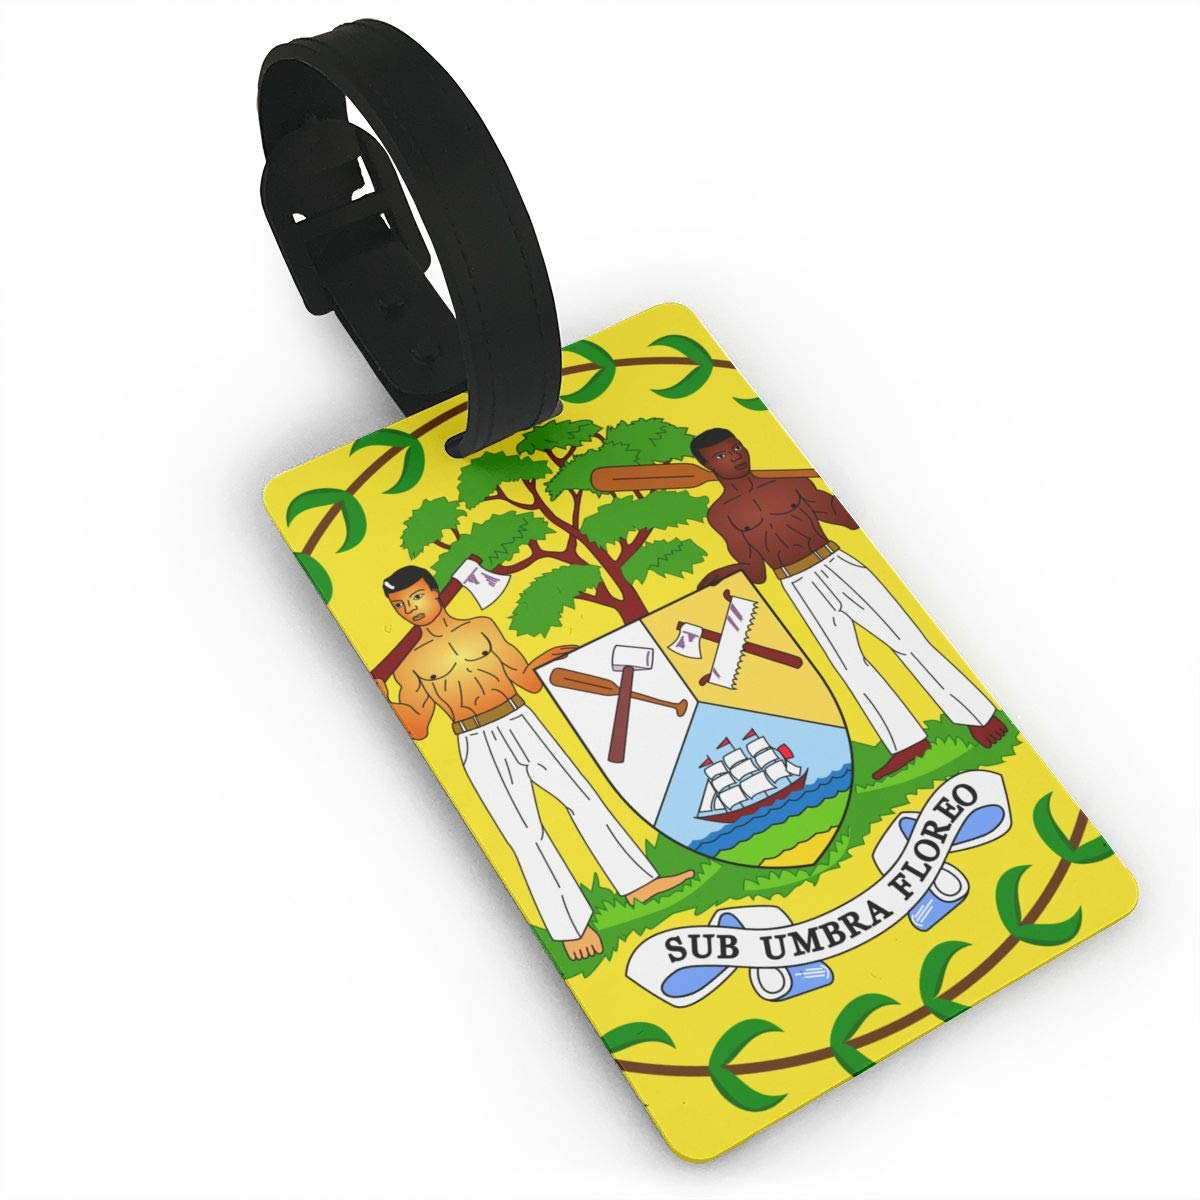 KODW12 Coat of Arms of Belize Luggage Tag Travel Bag Labels Suitcase Bag Tag Name Address Cards by KODW12 (Image #1)